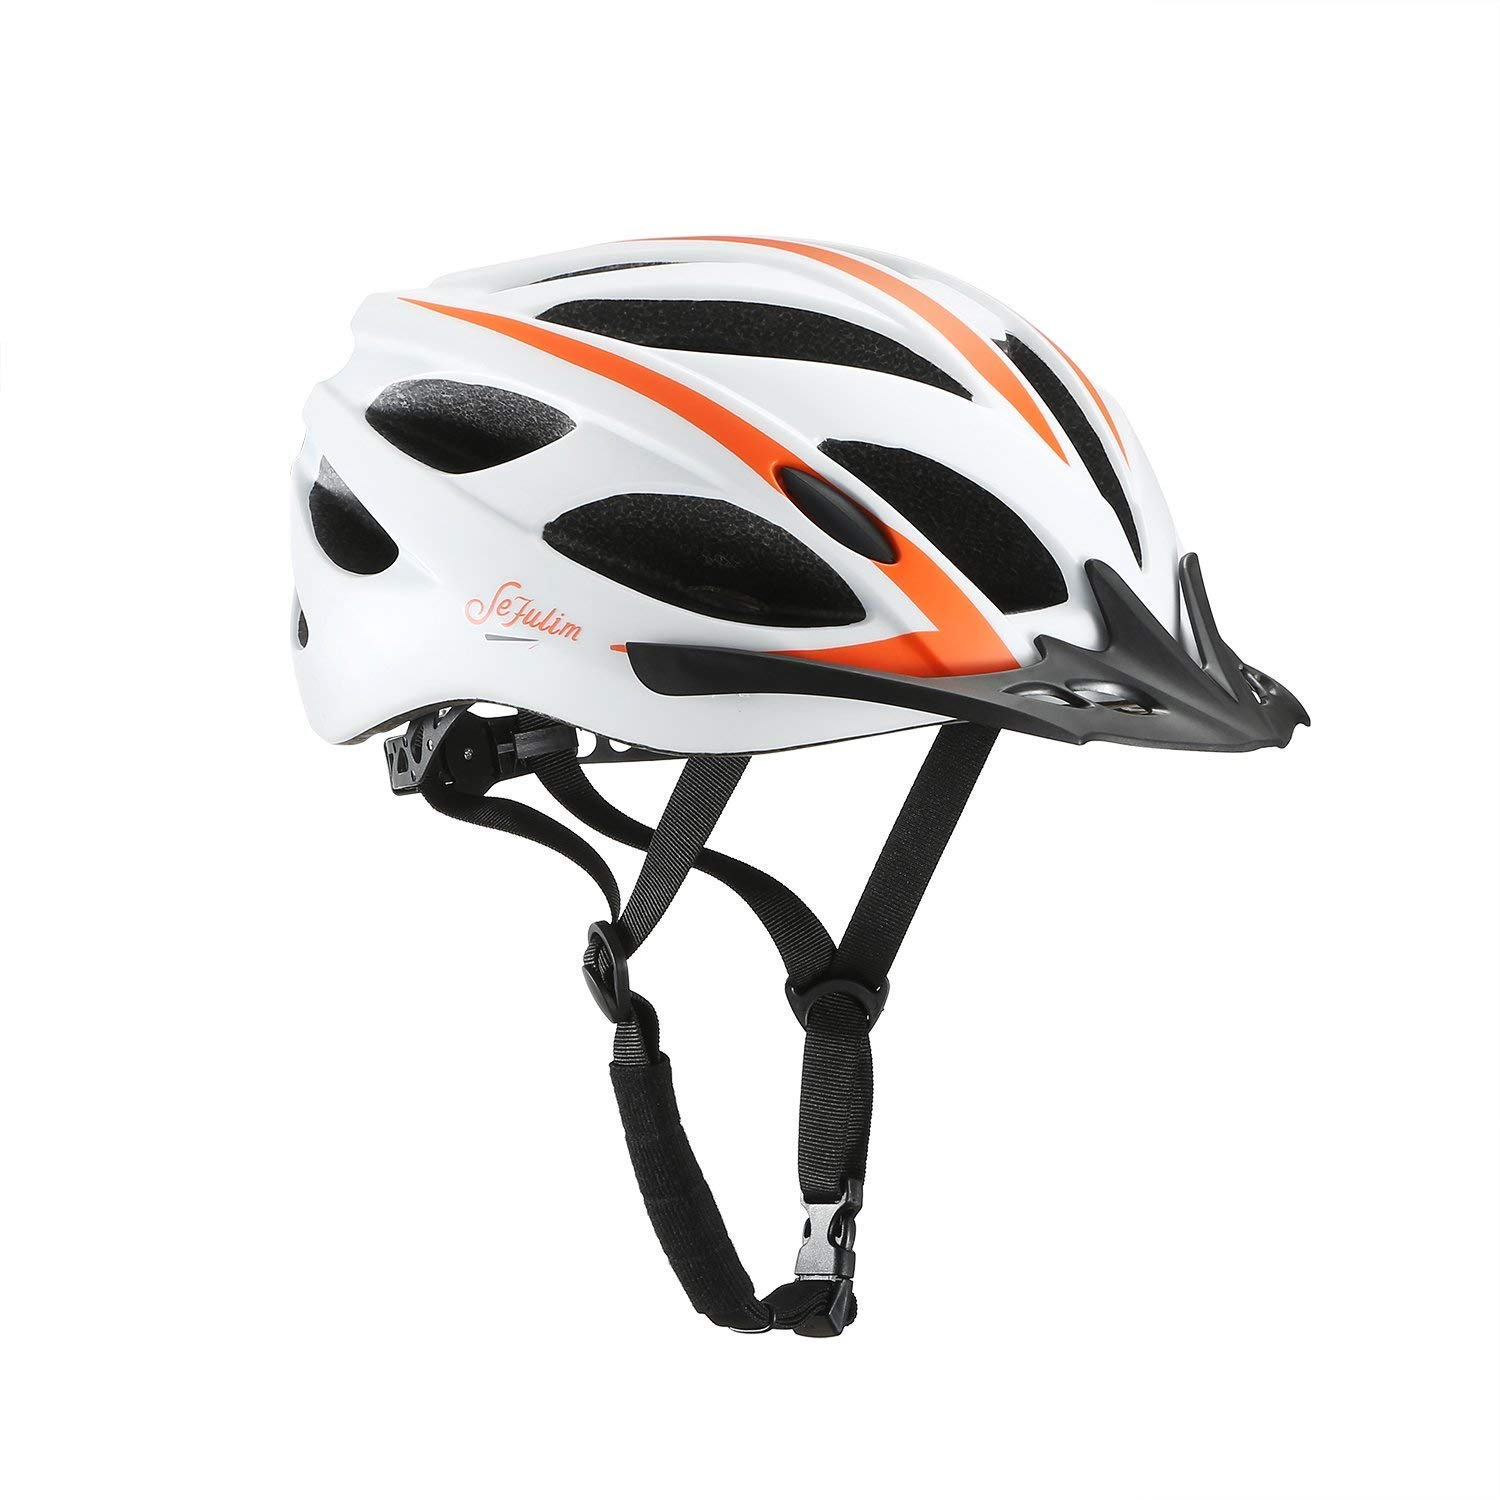 Sefulim Specialized Cycle Helmet Adult Racing Bike Cycling Helmets Adjustable Size for Girls Boys Spectacle-wearers White (Standard)